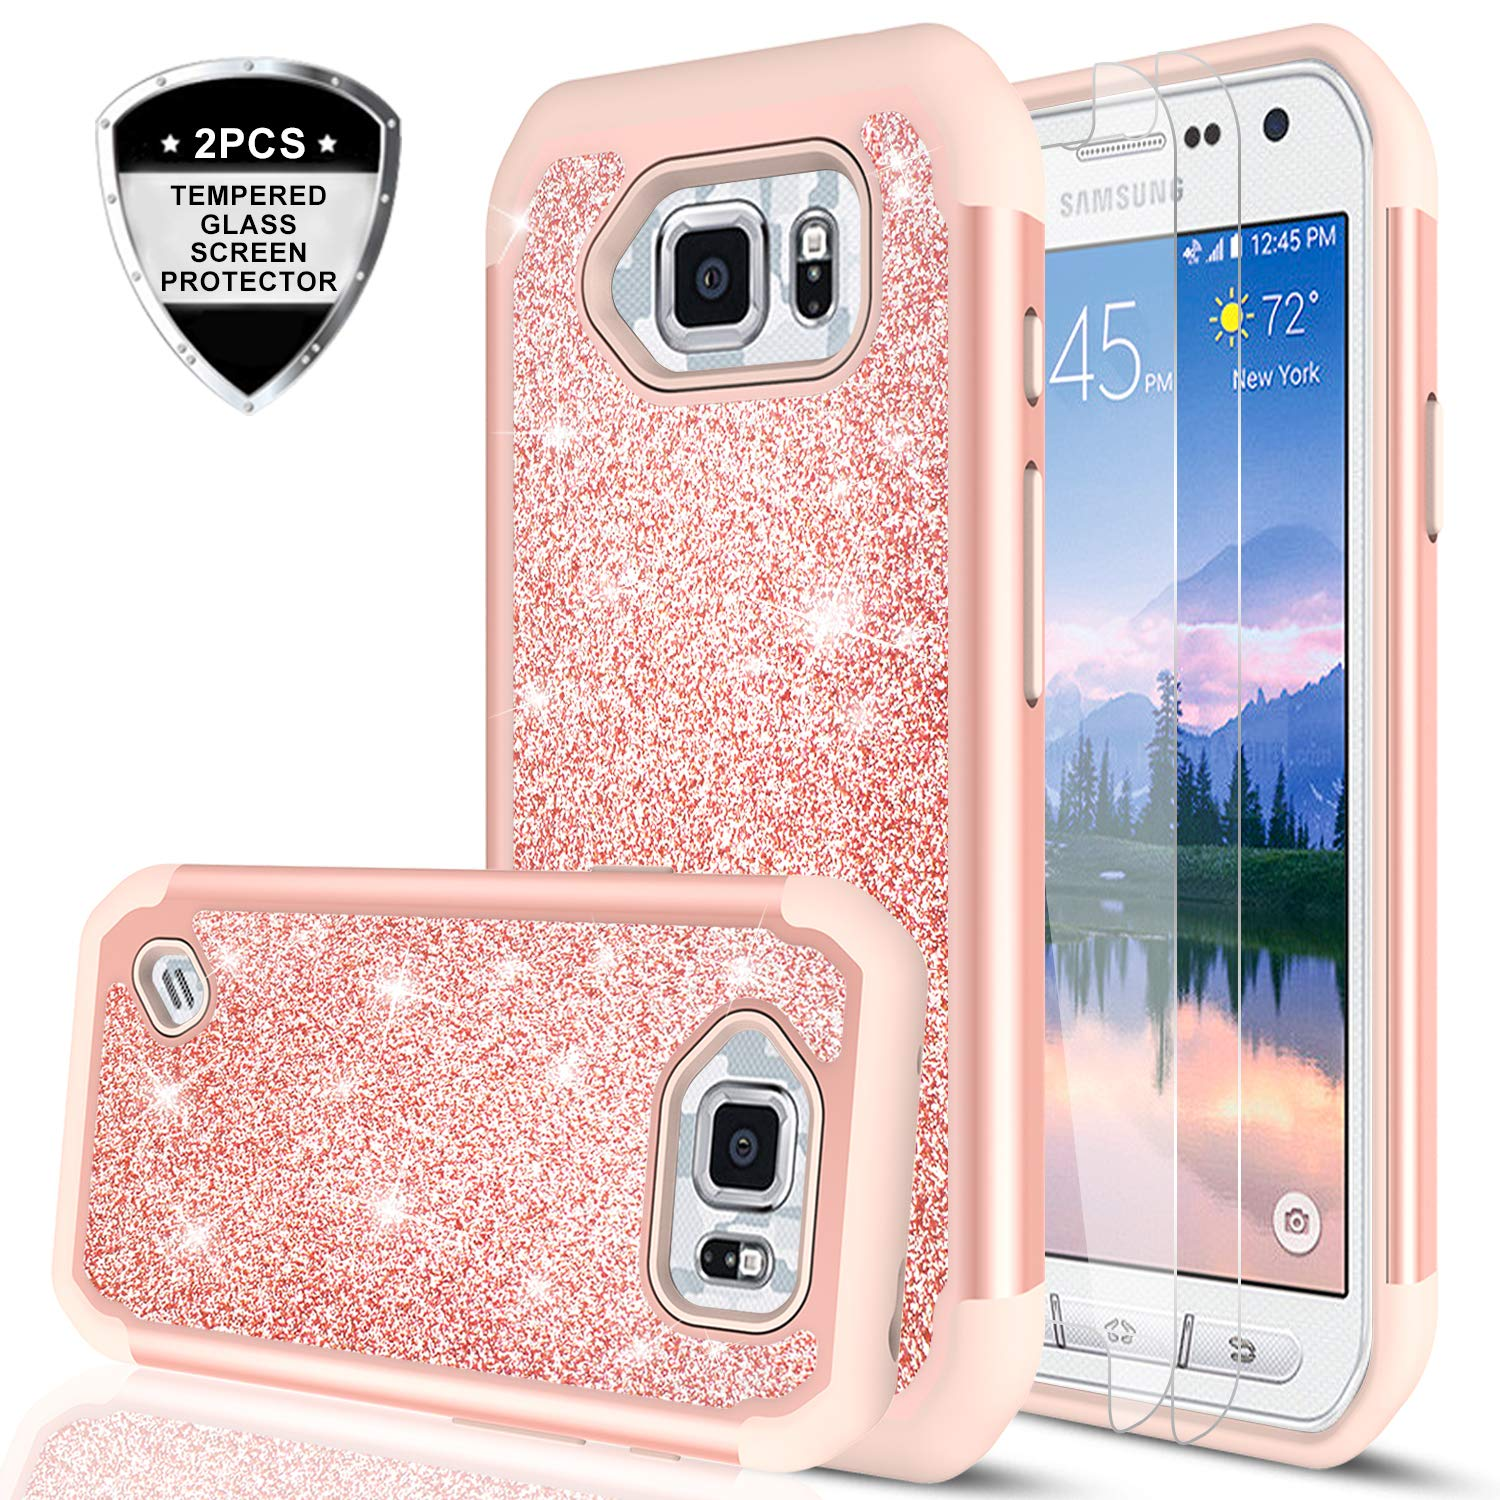 samsung s6 active cases amazon comgalaxy s6 active case (not fit galaxy s6)with tempered glass screen protector [